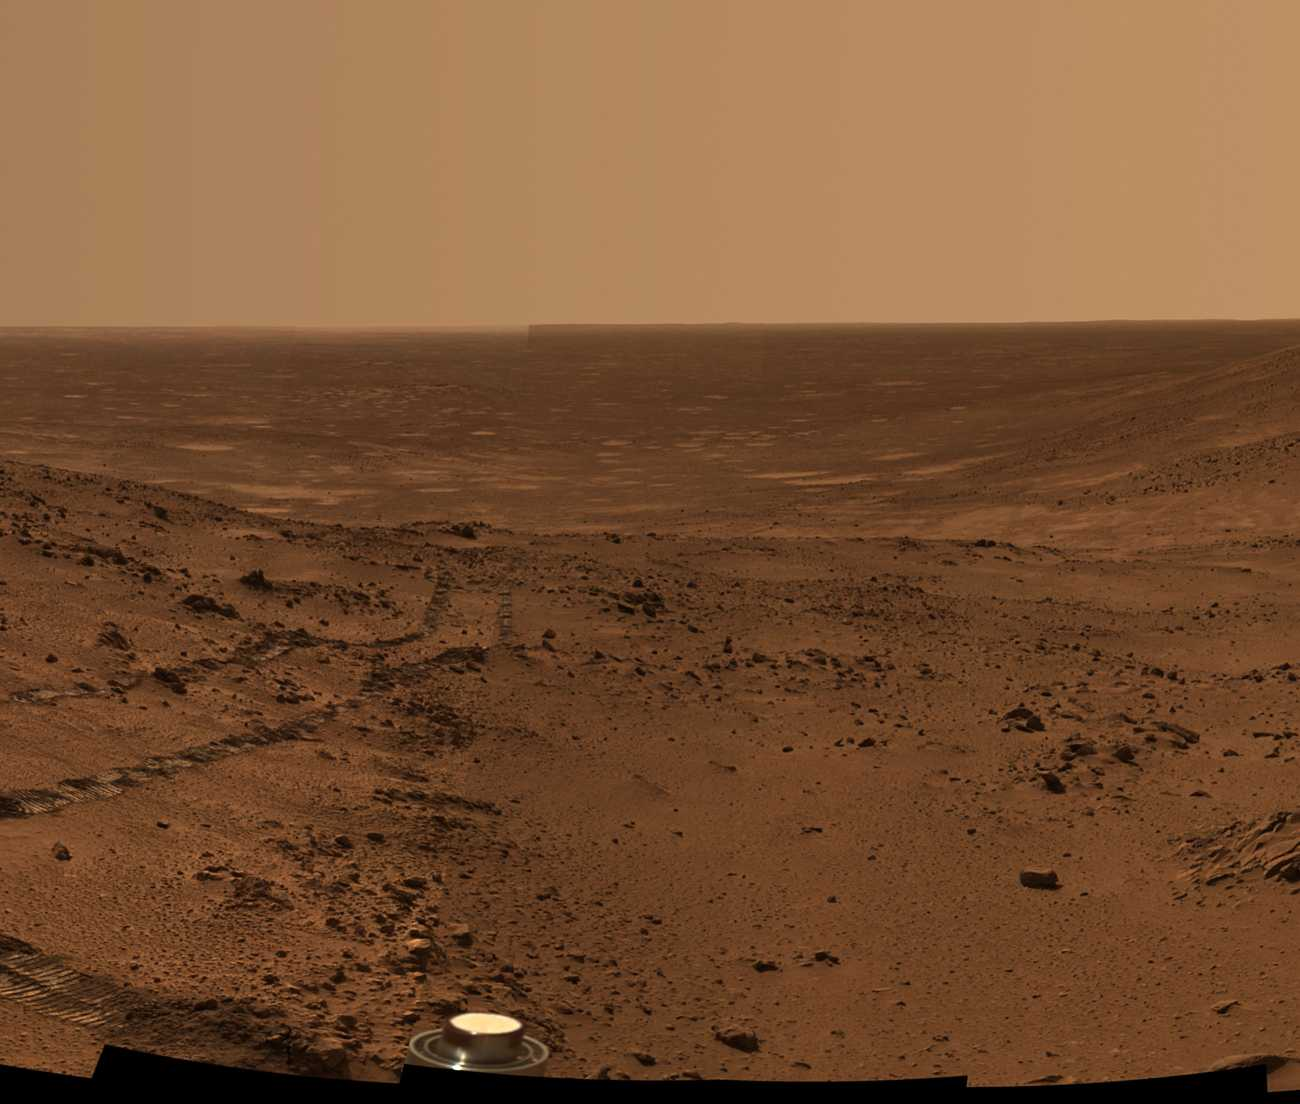 mars rover pictures hd - photo #9